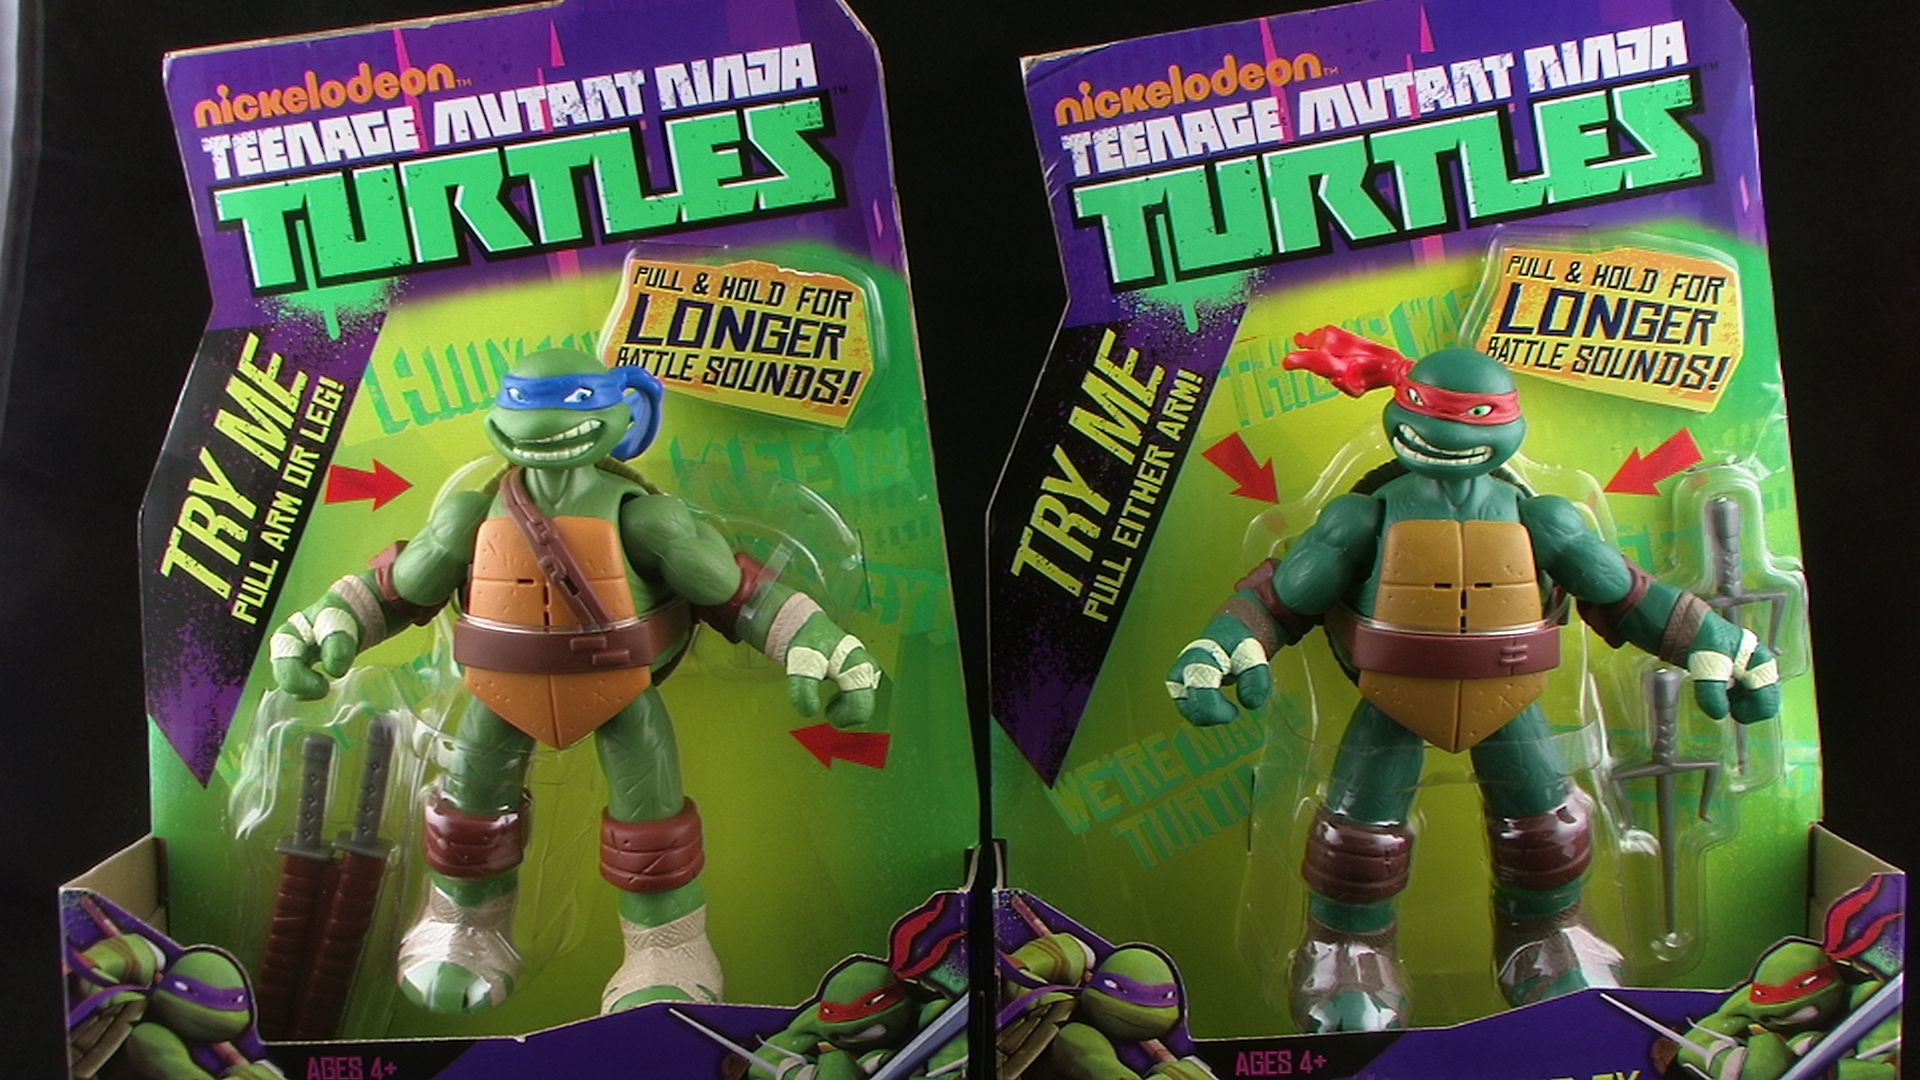 Nickelodeon Teenage Mutant Ninja Turtles Power Sound Fx Leonardo